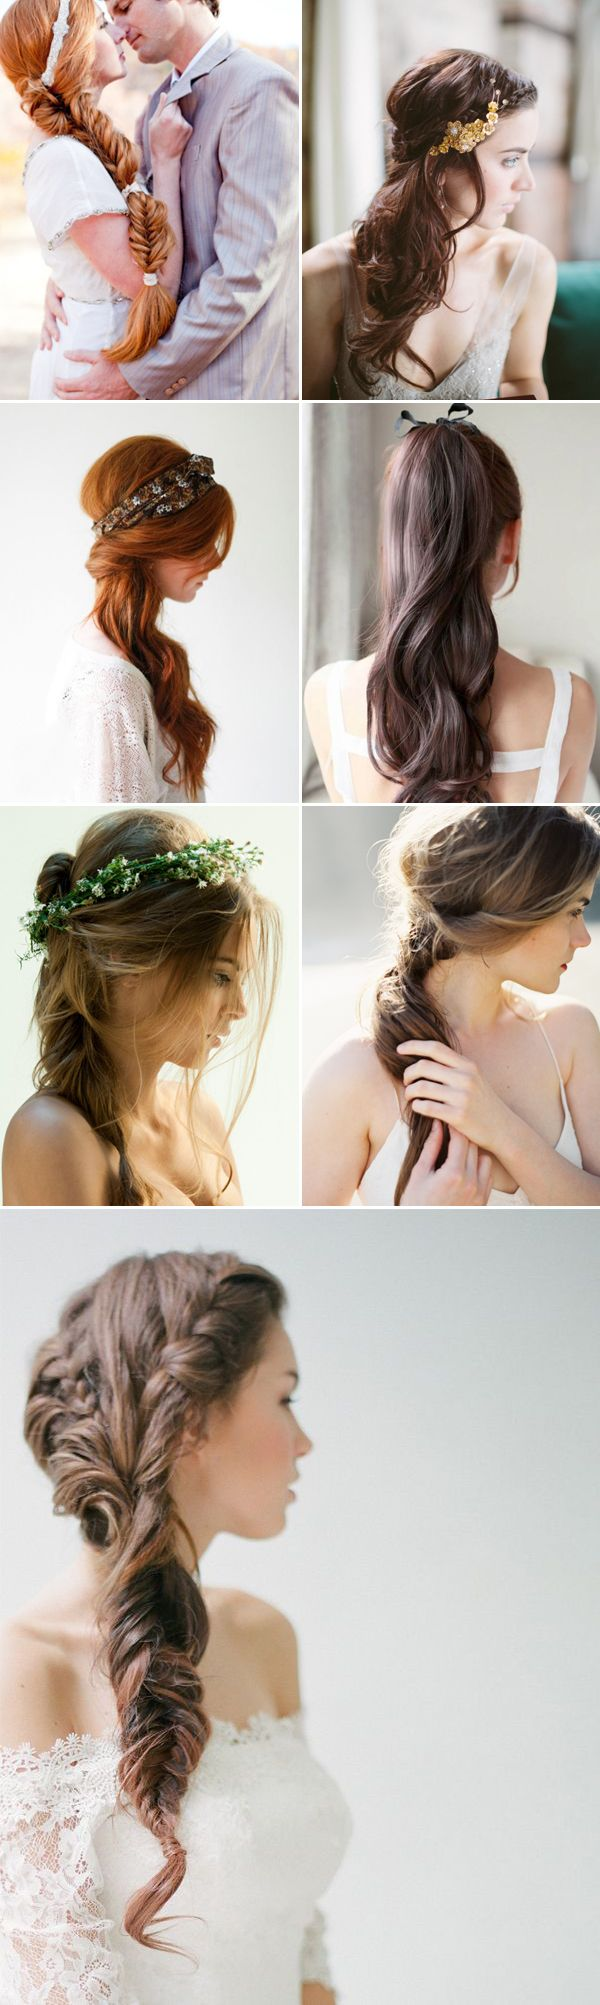 20 Effortlessly Stylish Bridal Hairstyles - Loosely Tied